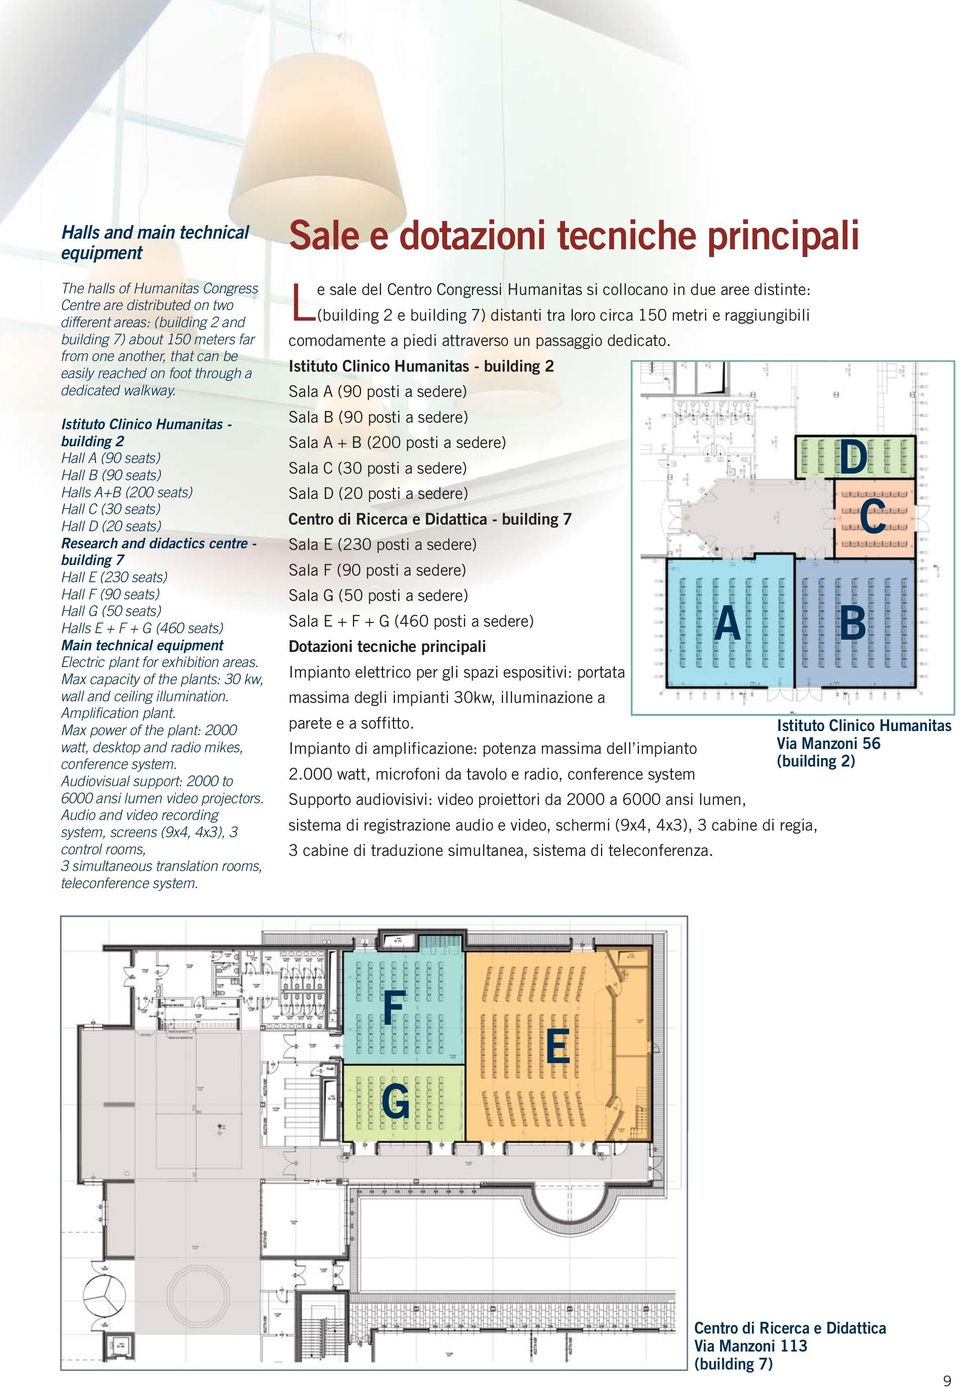 Istituto Clinico Humanitas - building 2 Hall A (90 seats) Hall B (90 seats) Halls A+B (200 seats) Hall C (30 seats) Hall D (20 seats) Research and didactics centre - building 7 Hall E (230 seats)